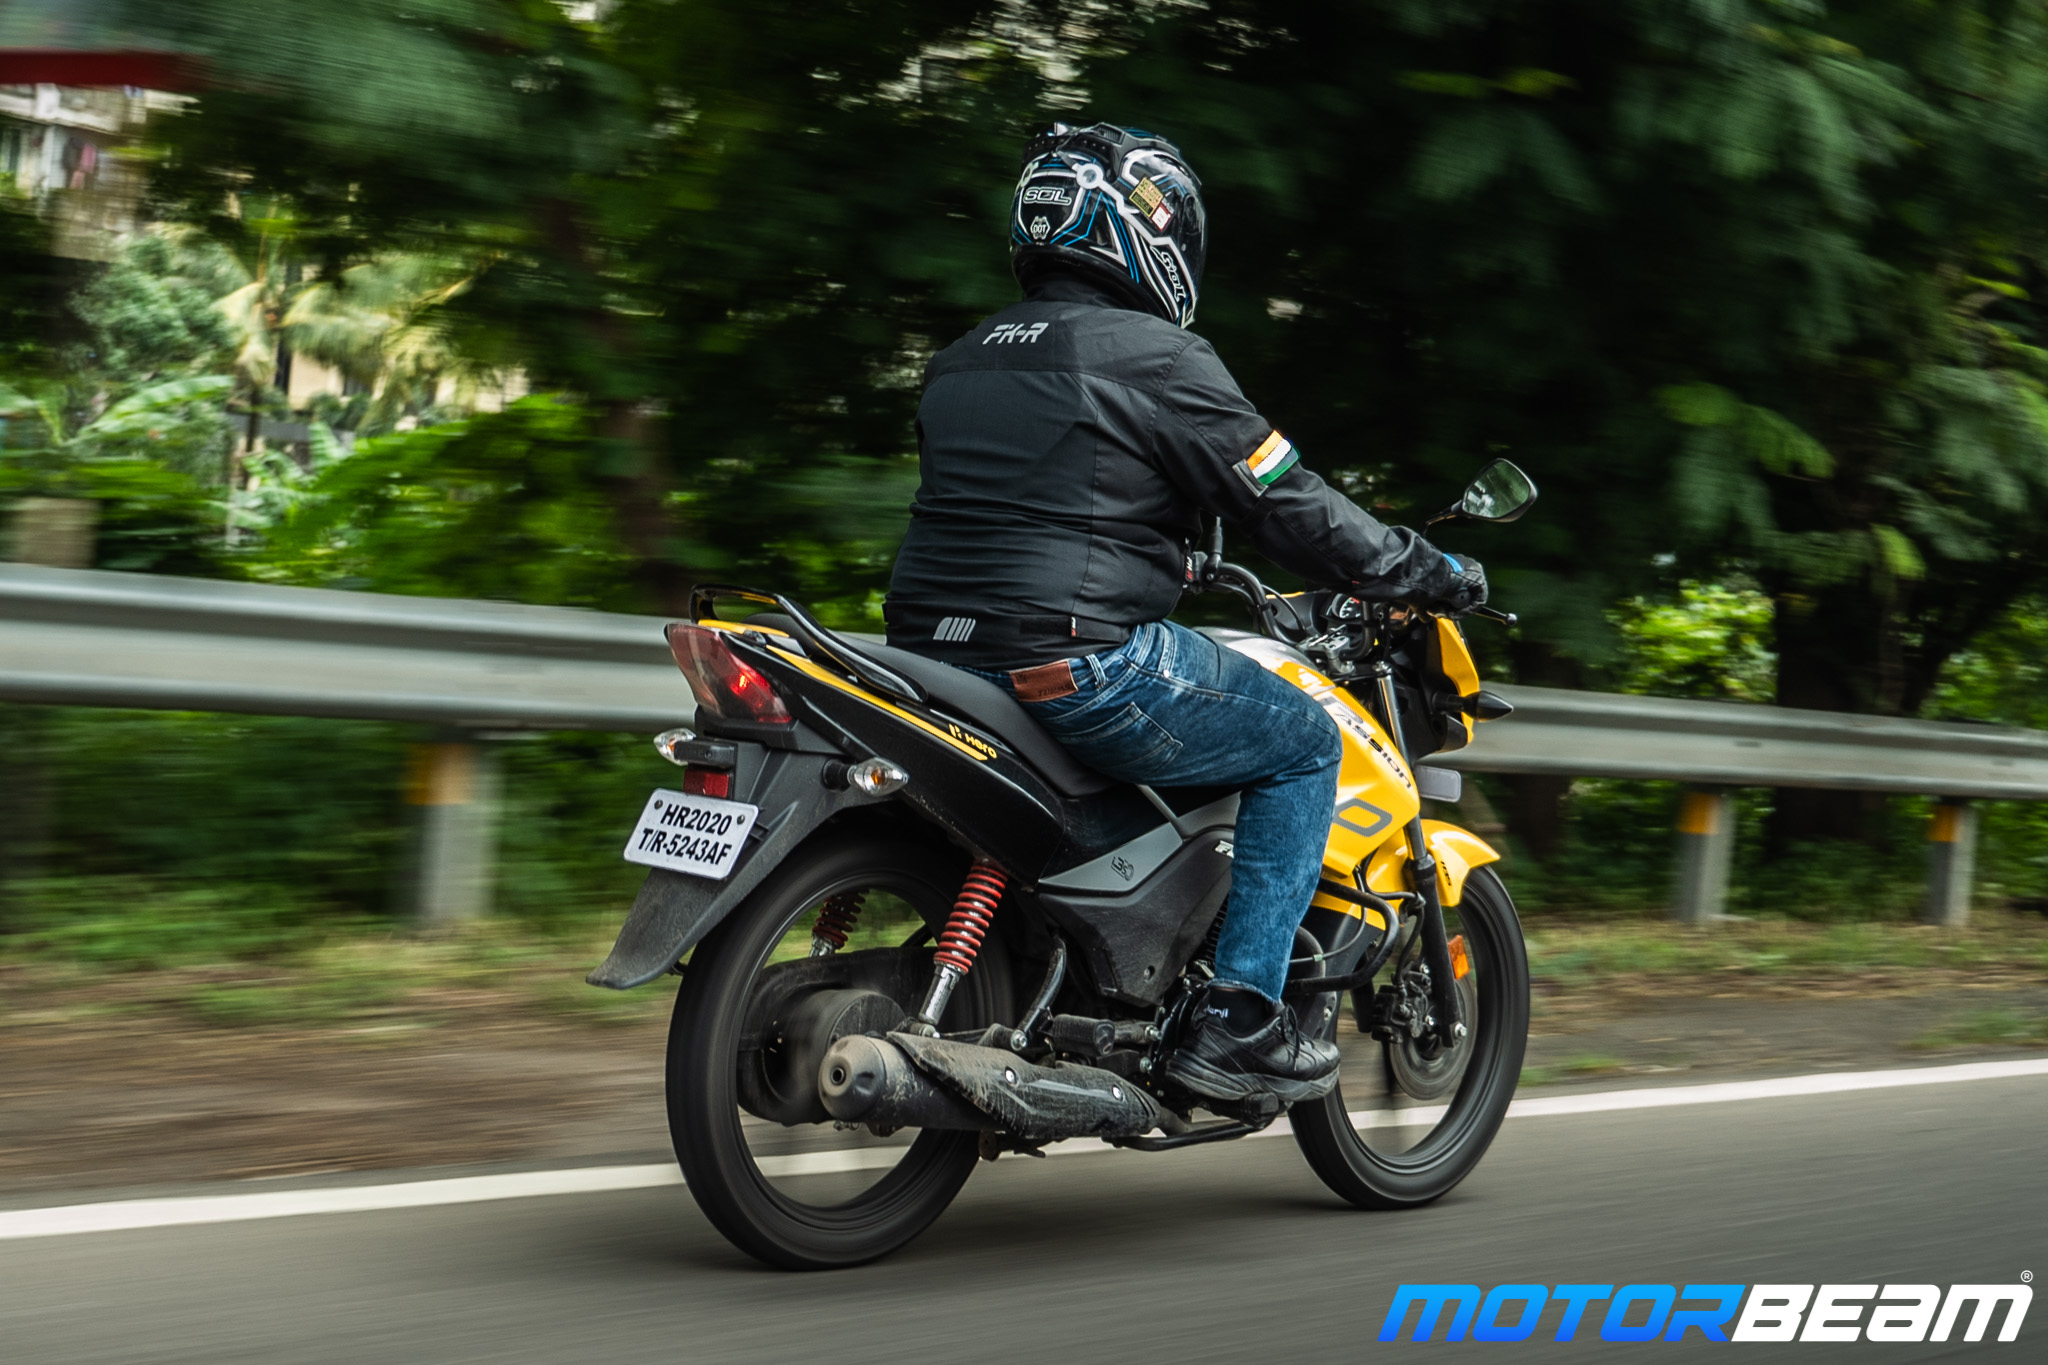 2020 Hero Passion Pro Review 3